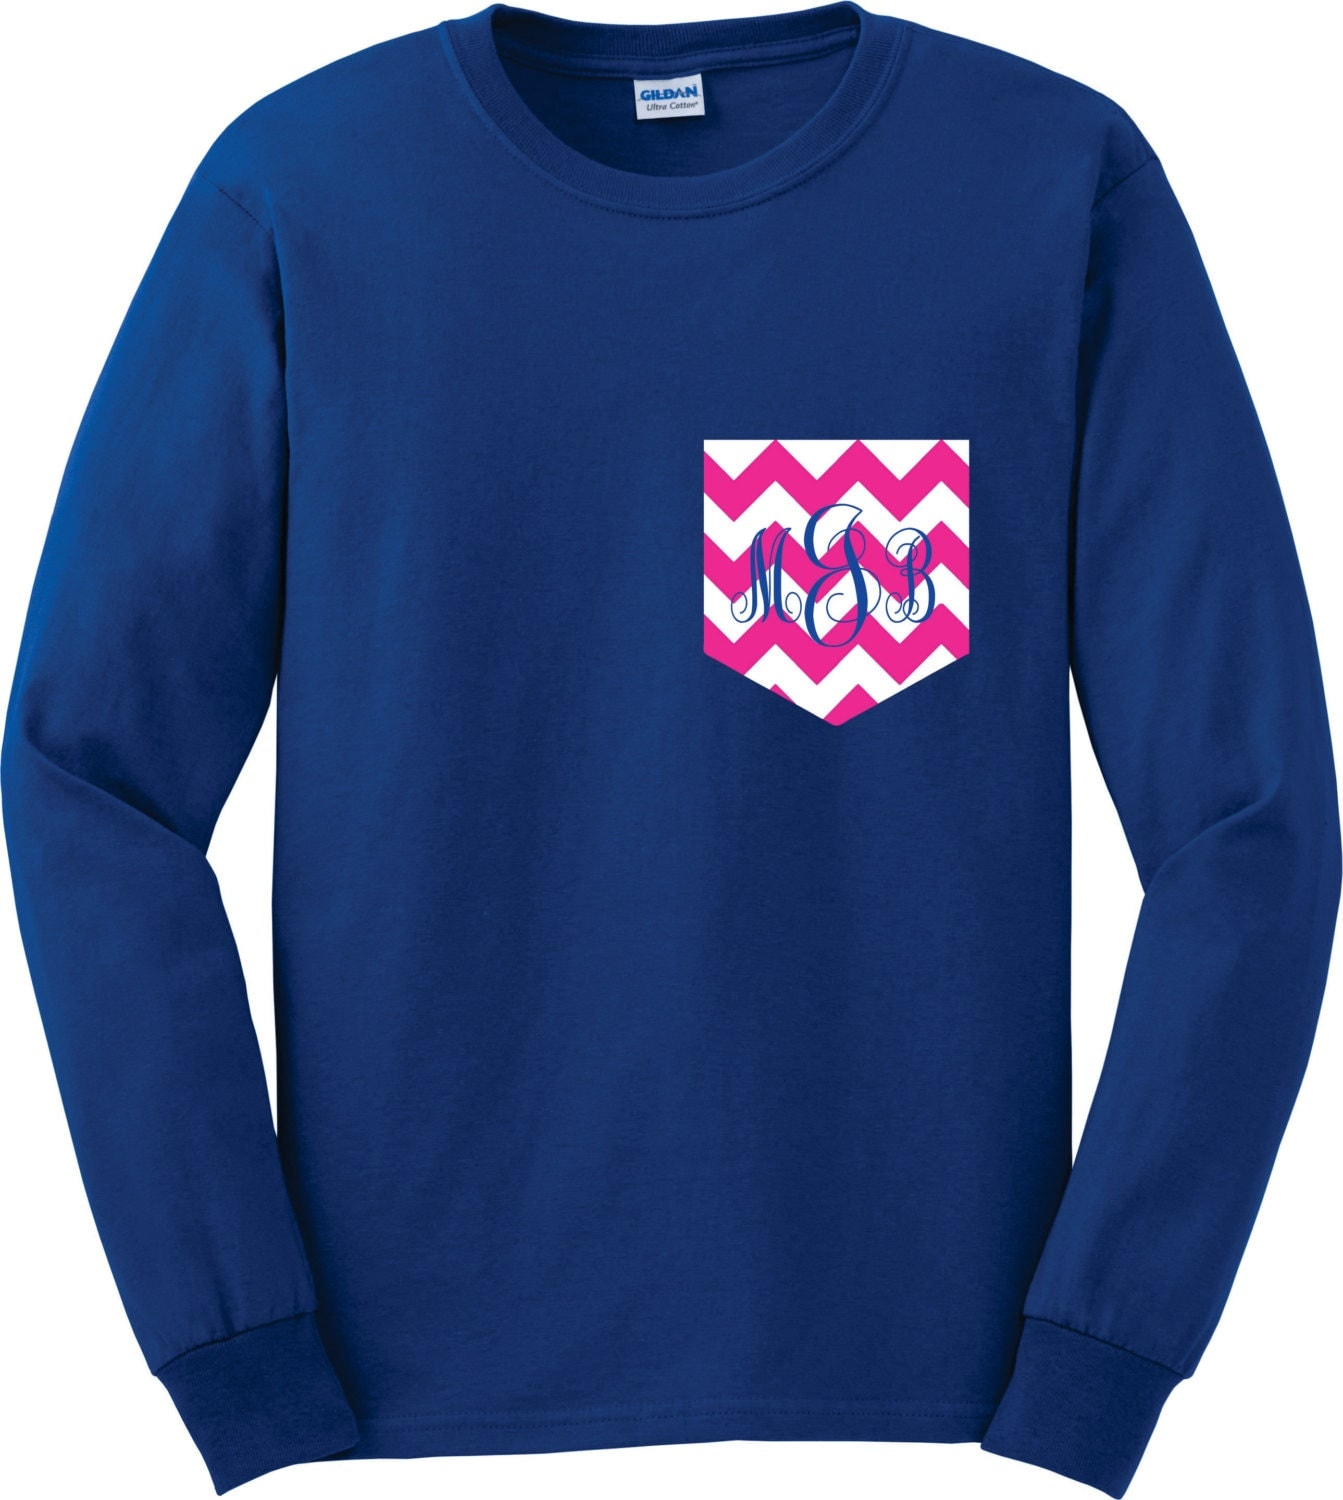 Monogram Longsleeve Shirt Personalized Teen Girl Gifts